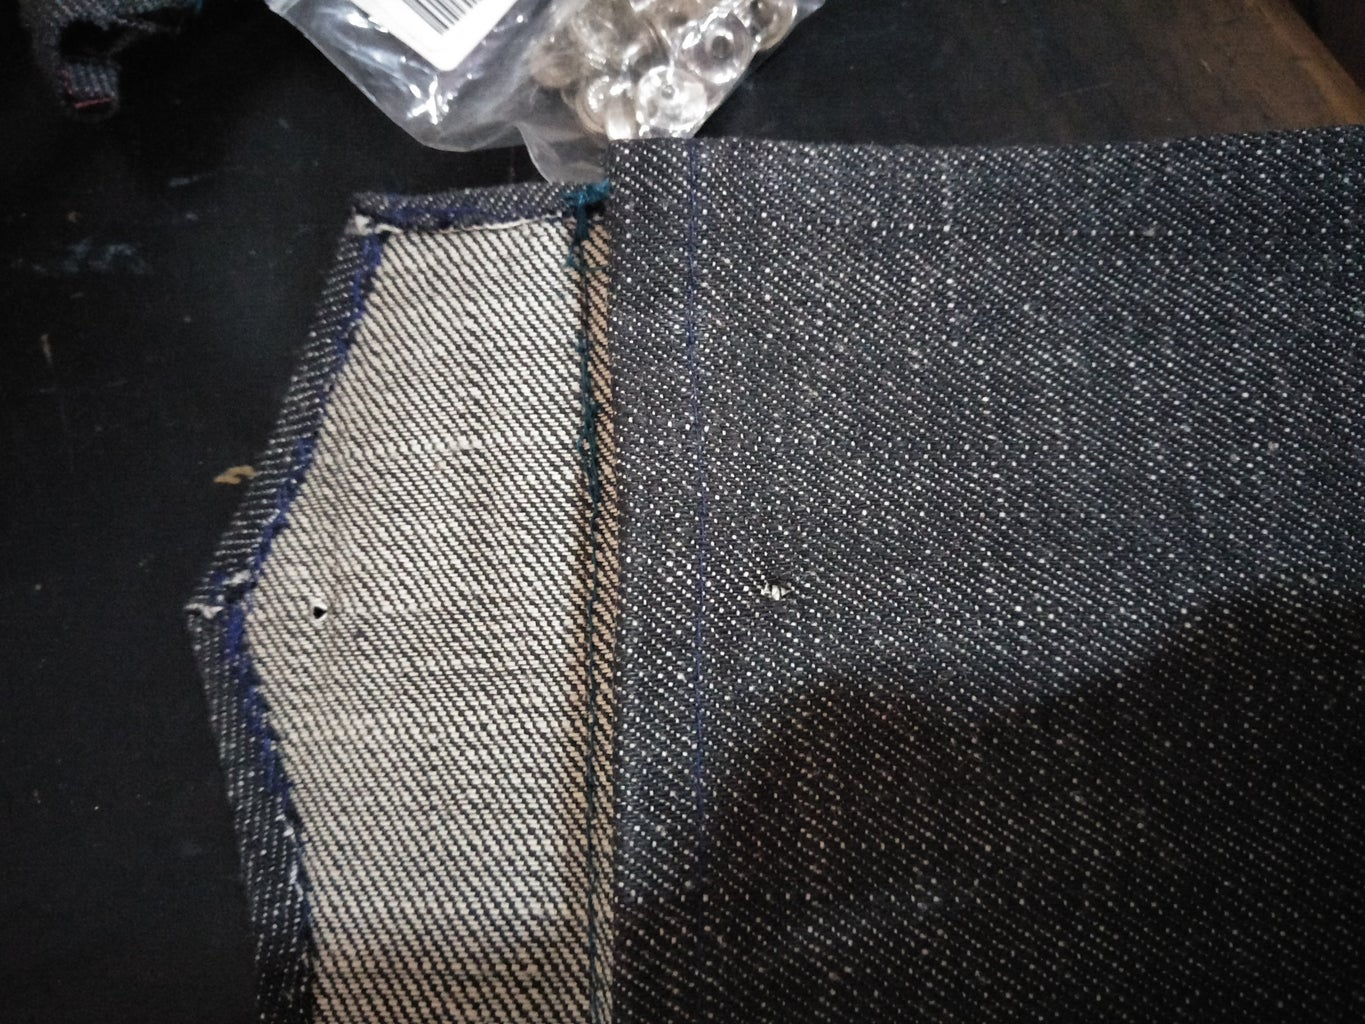 Sewing the Double-Sided Pocket Insert